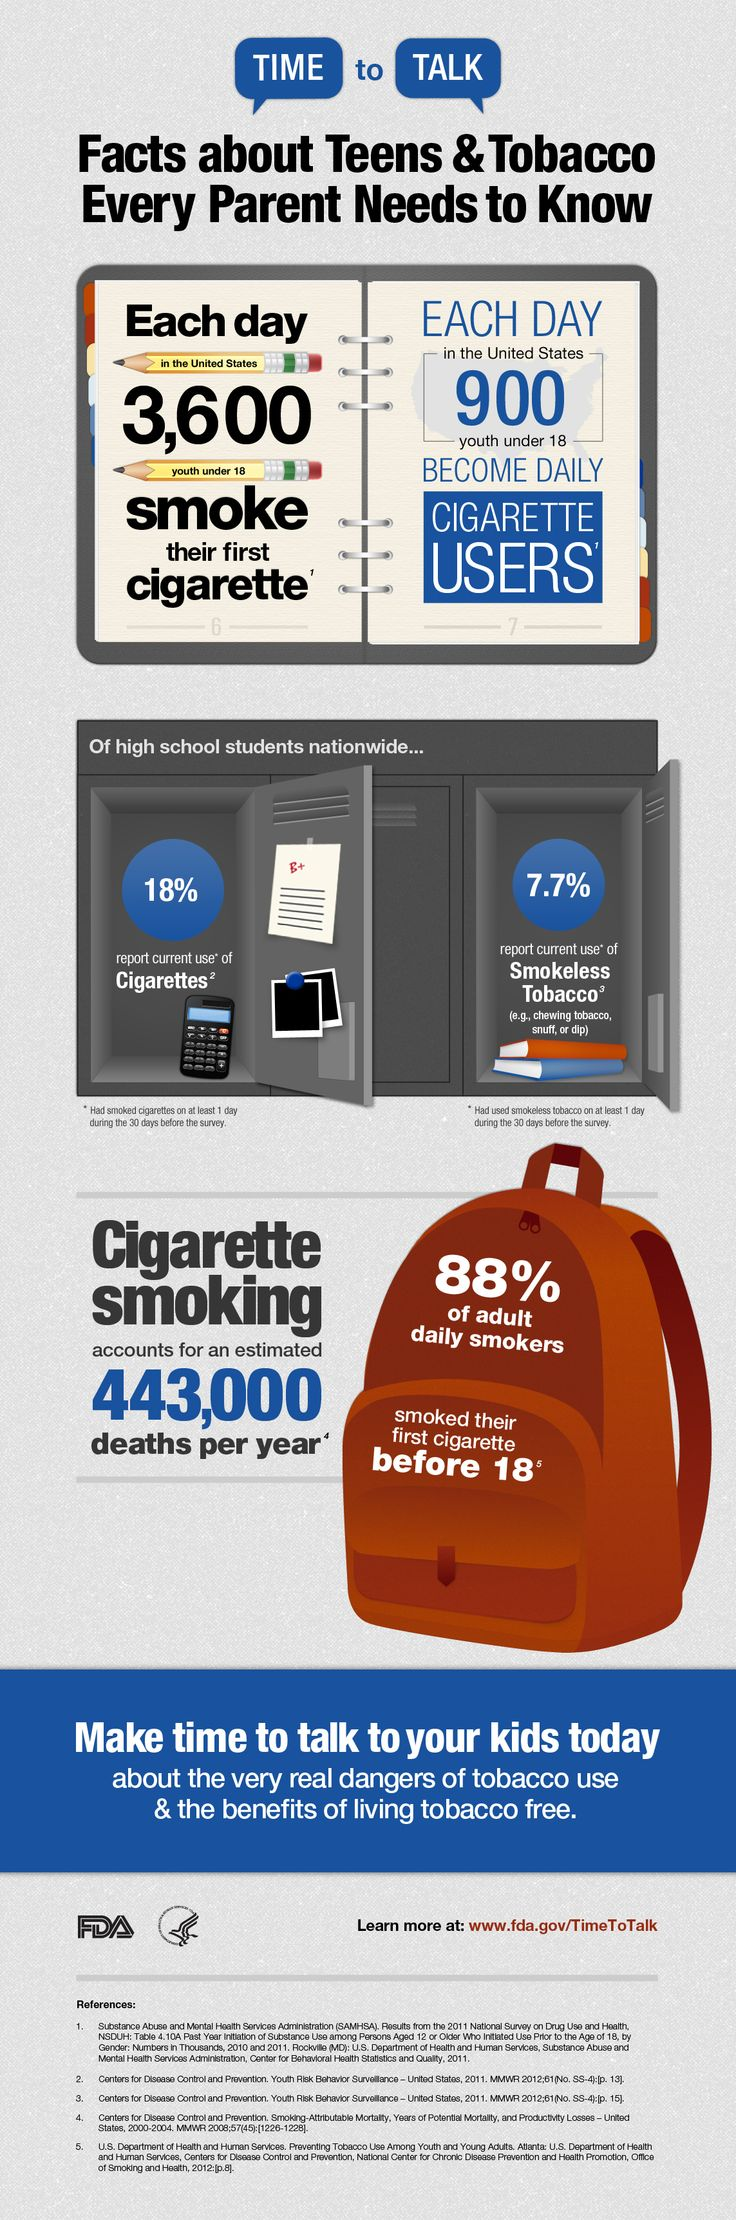 Each day in the U.S. 3,600 youth under 18 smoke their first cigarette and 900 youth under 18 become daily cigarette users. Of U.S. high school students, 18% report current use of cigarettes and 7.7% report current use of smokeless tobacco. Cigarette smoking accounts for an estimated 443,000 deaths per year. More than 88% of established adult smokers begin before 18. Talk to your kids today about the dangers of tobacco use and the benefits of living tobacco free. www.fda.gov/TimeToTalk